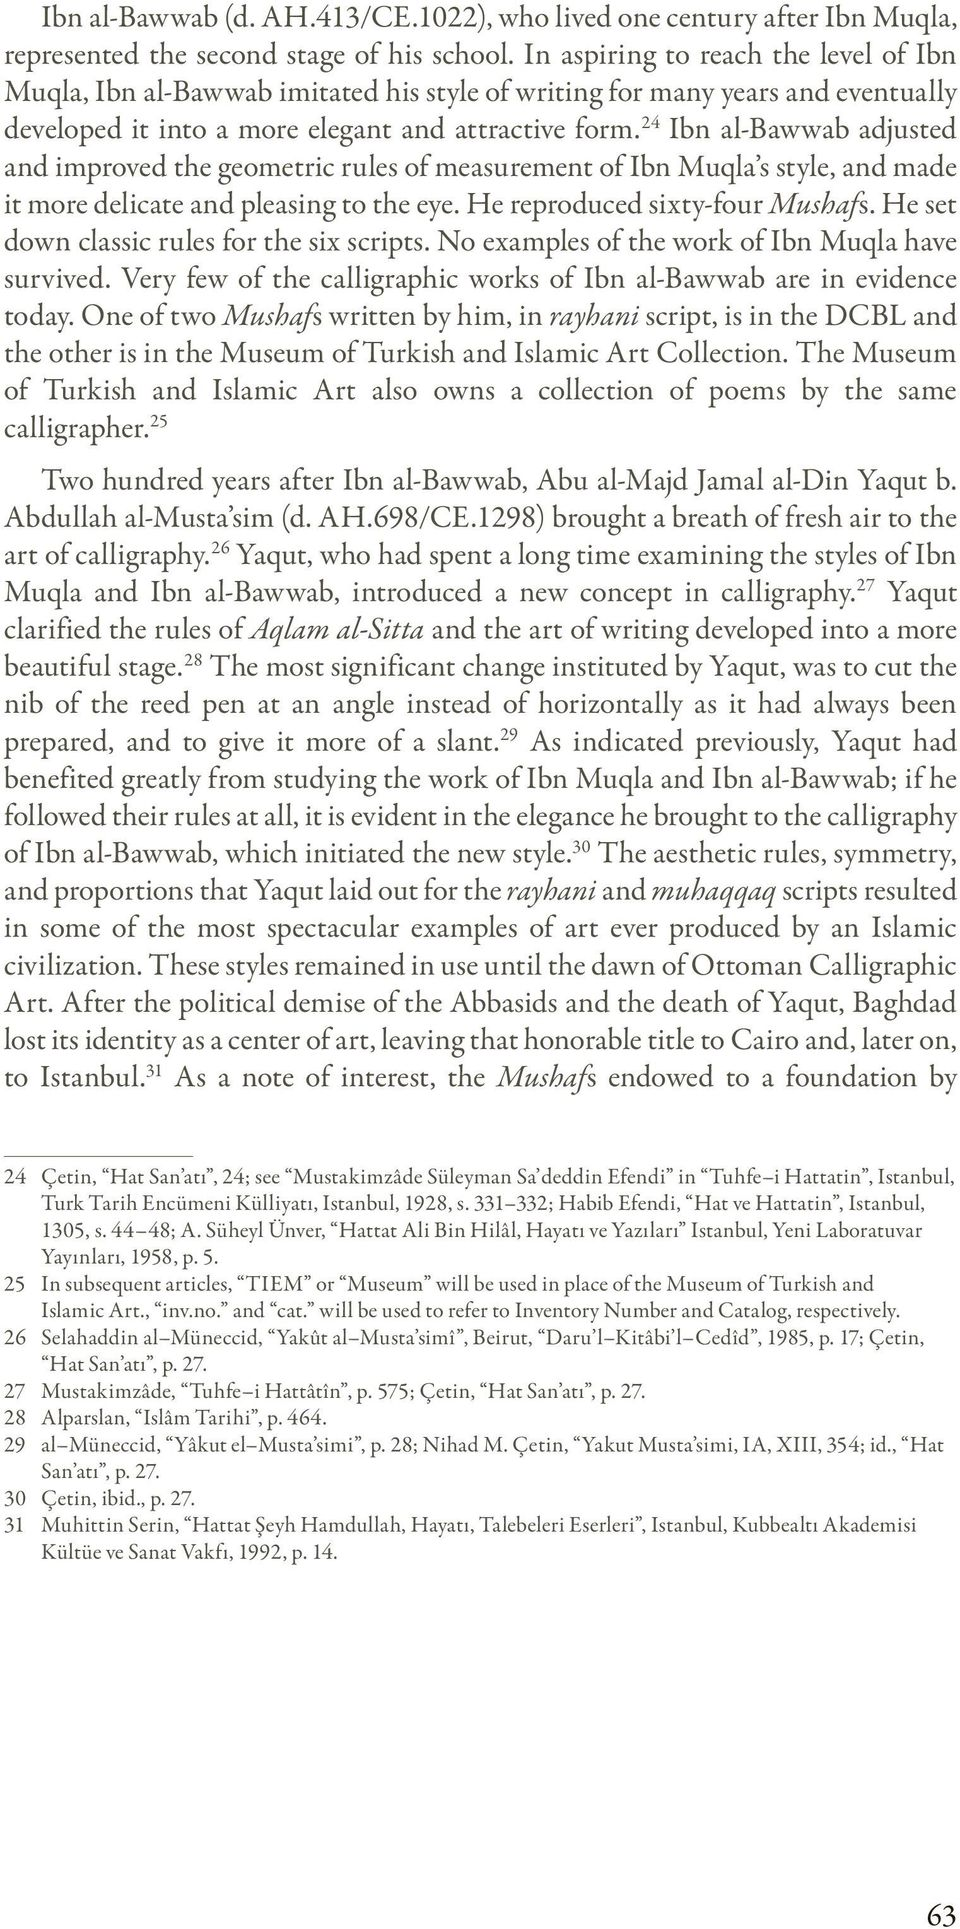 24 Ibn al-bawwab adjusted and improved the geometric rules of measurement of Ibn Muqla s style, and made it more delicate and pleasing to the eye. He reproduced sixty-four Mushafs.